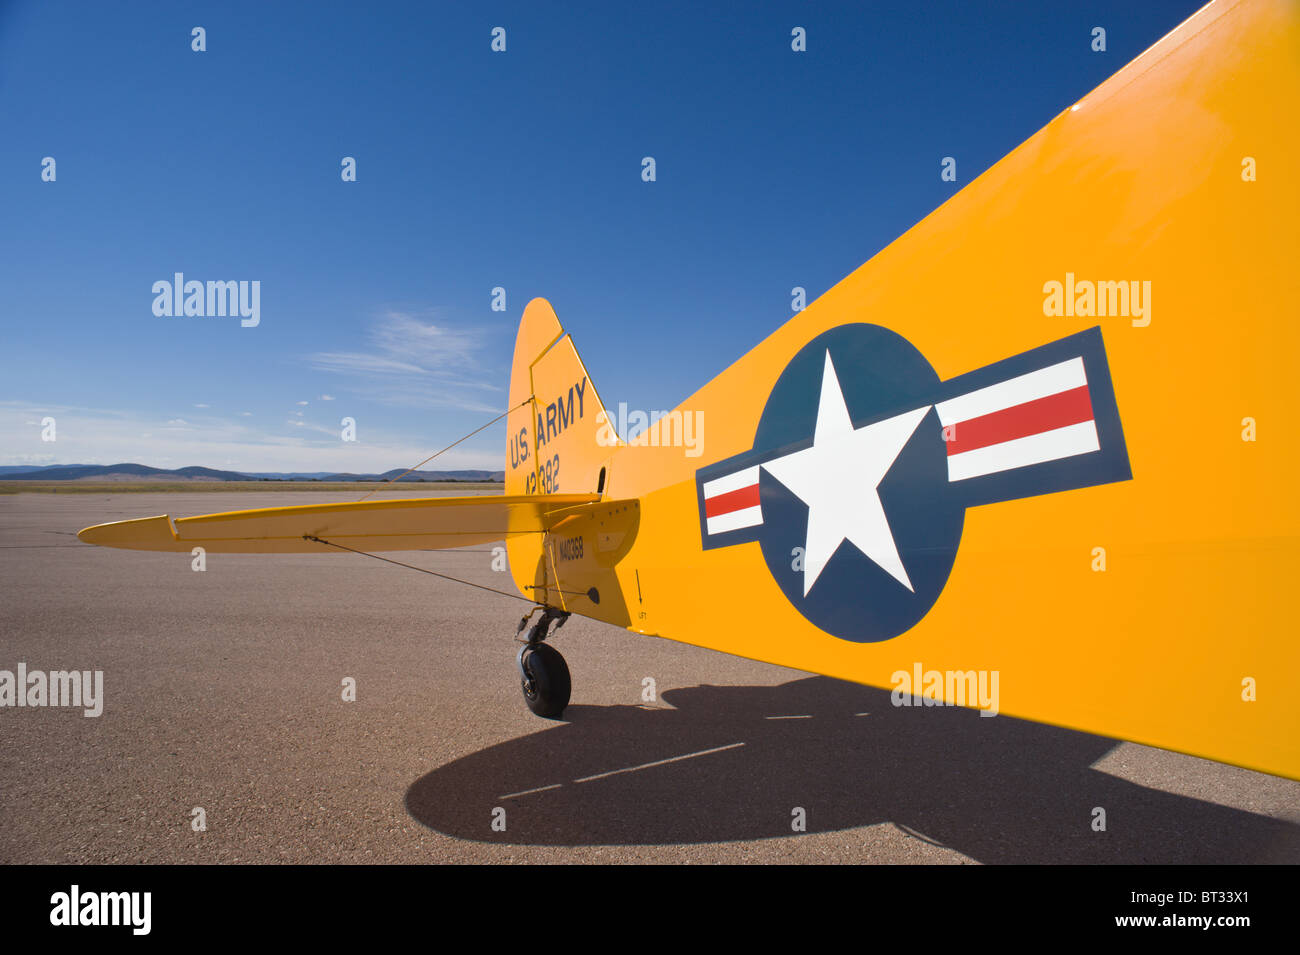 Detail of US Army Piper Cub airplane, at the Ruidoso Mountain High Fly In, Ruidoso, New Mexico. - Stock Image